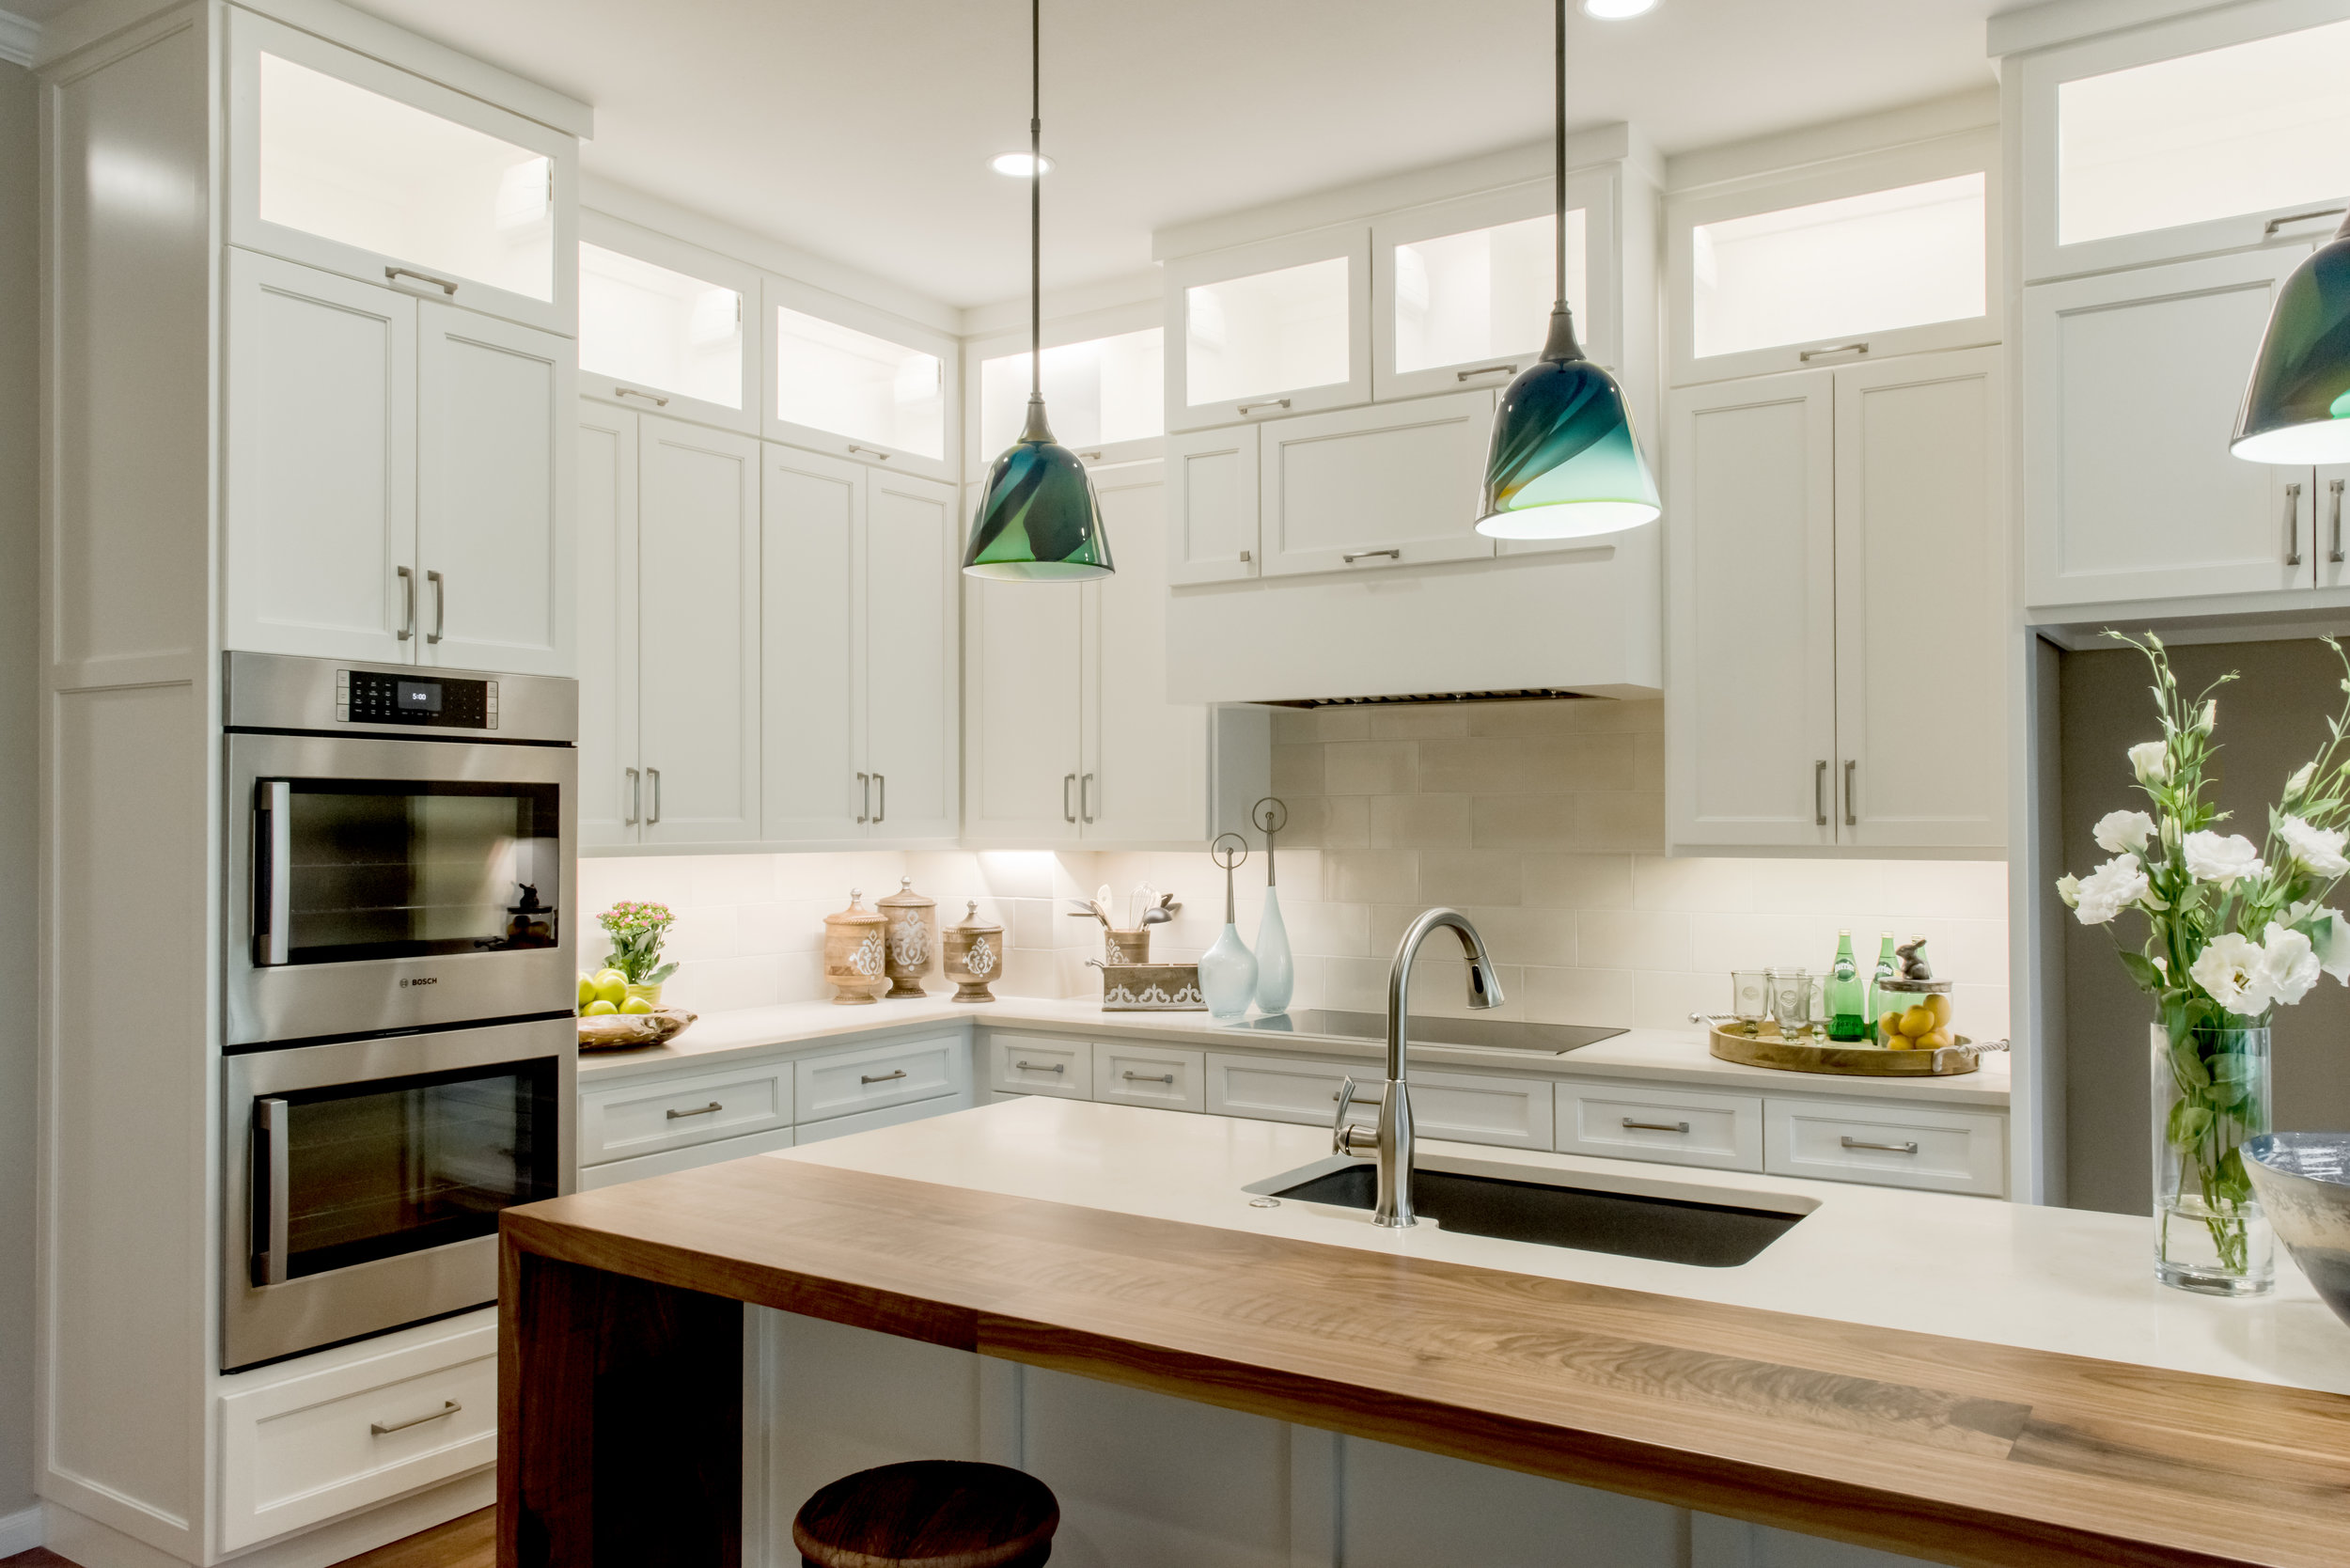 Hill Country Kitchen Remodel - VIEW MORE >>